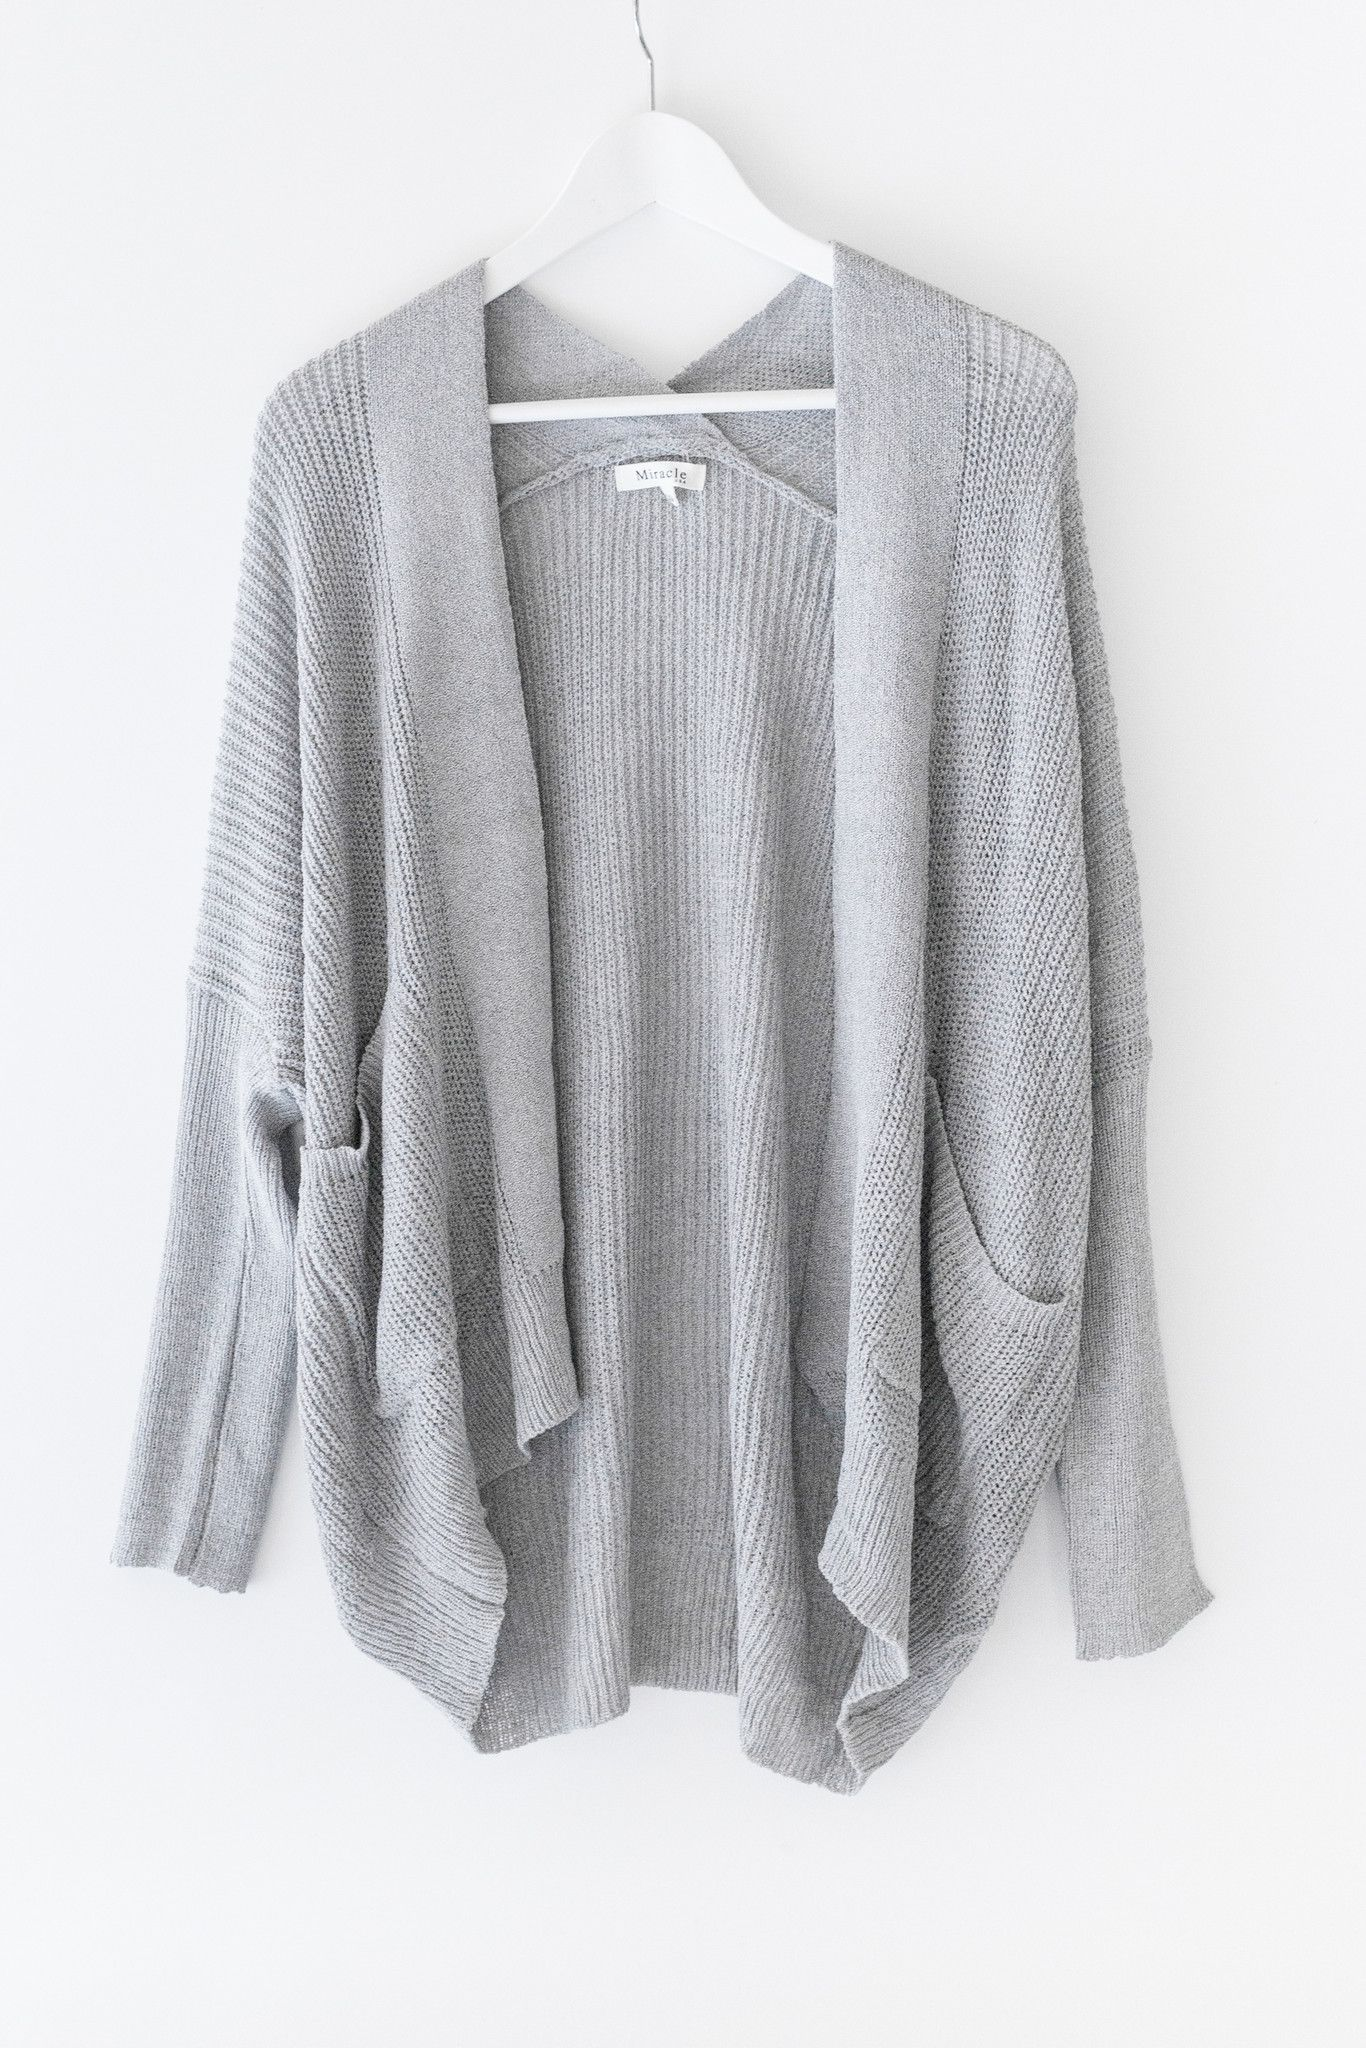 Lightweight slouchy knit cardigan - Fitted ribbed knit long ...